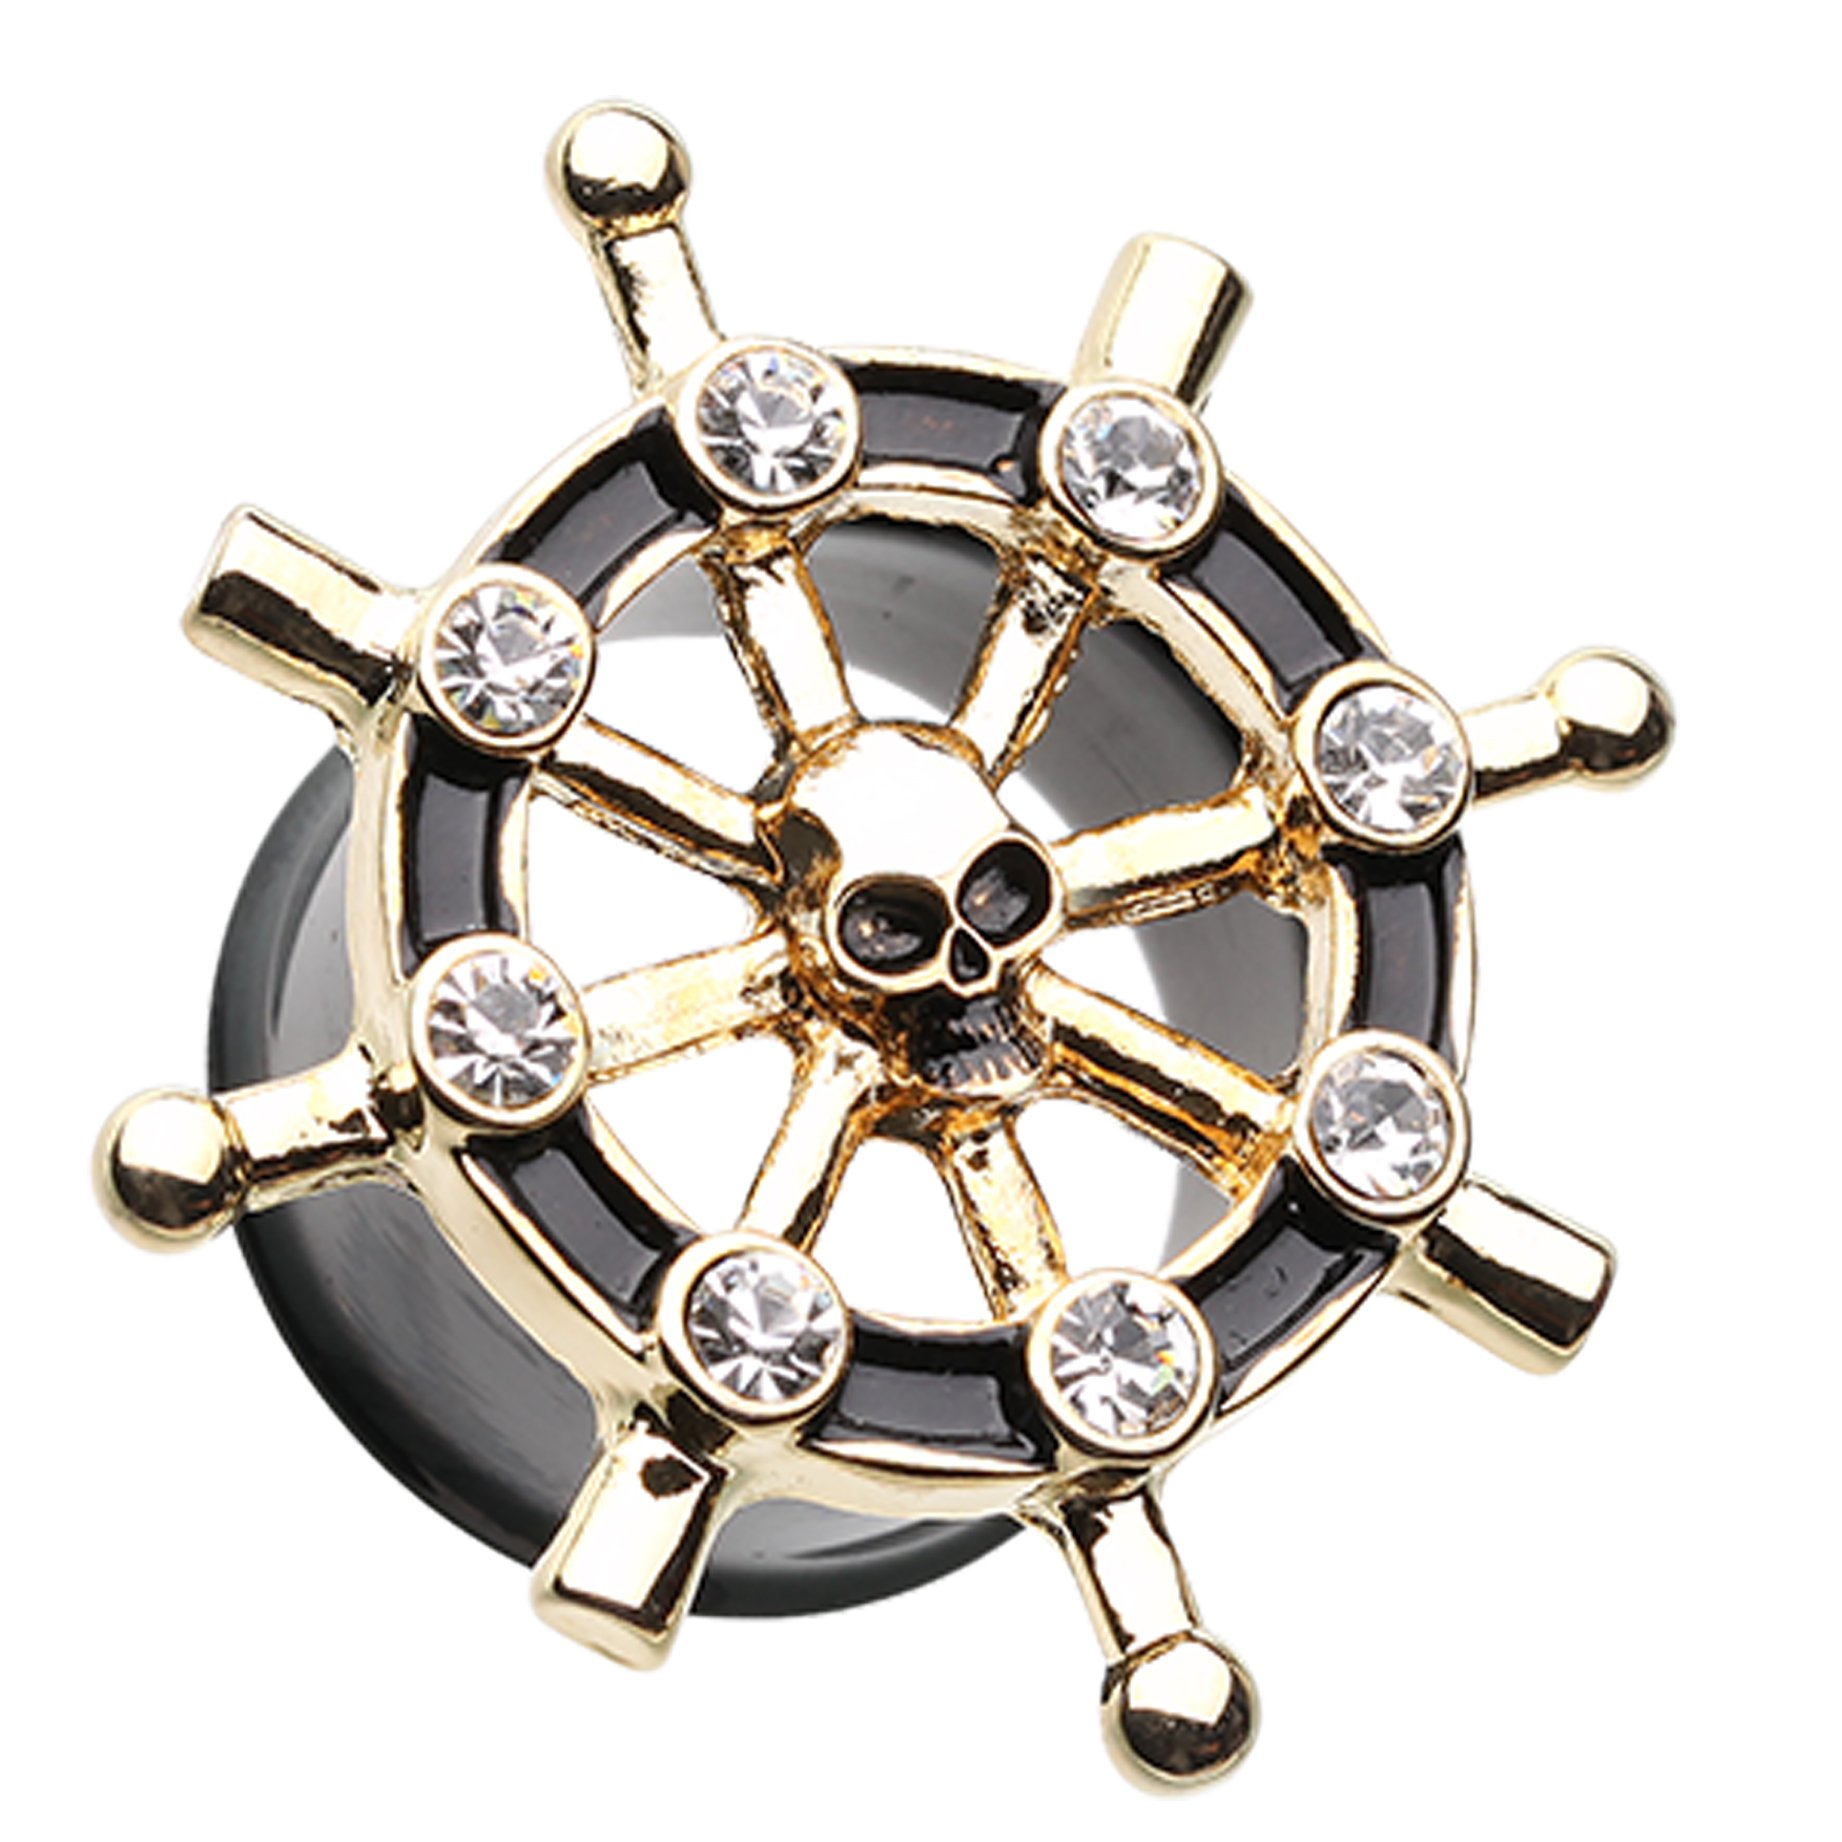 Golden Colored Pirate Ship Anchor Wheel Ear Gauge Plug - 3/4'' (19mm) - Black/Clear - Sold as a Pair by Cosmic - Plugs